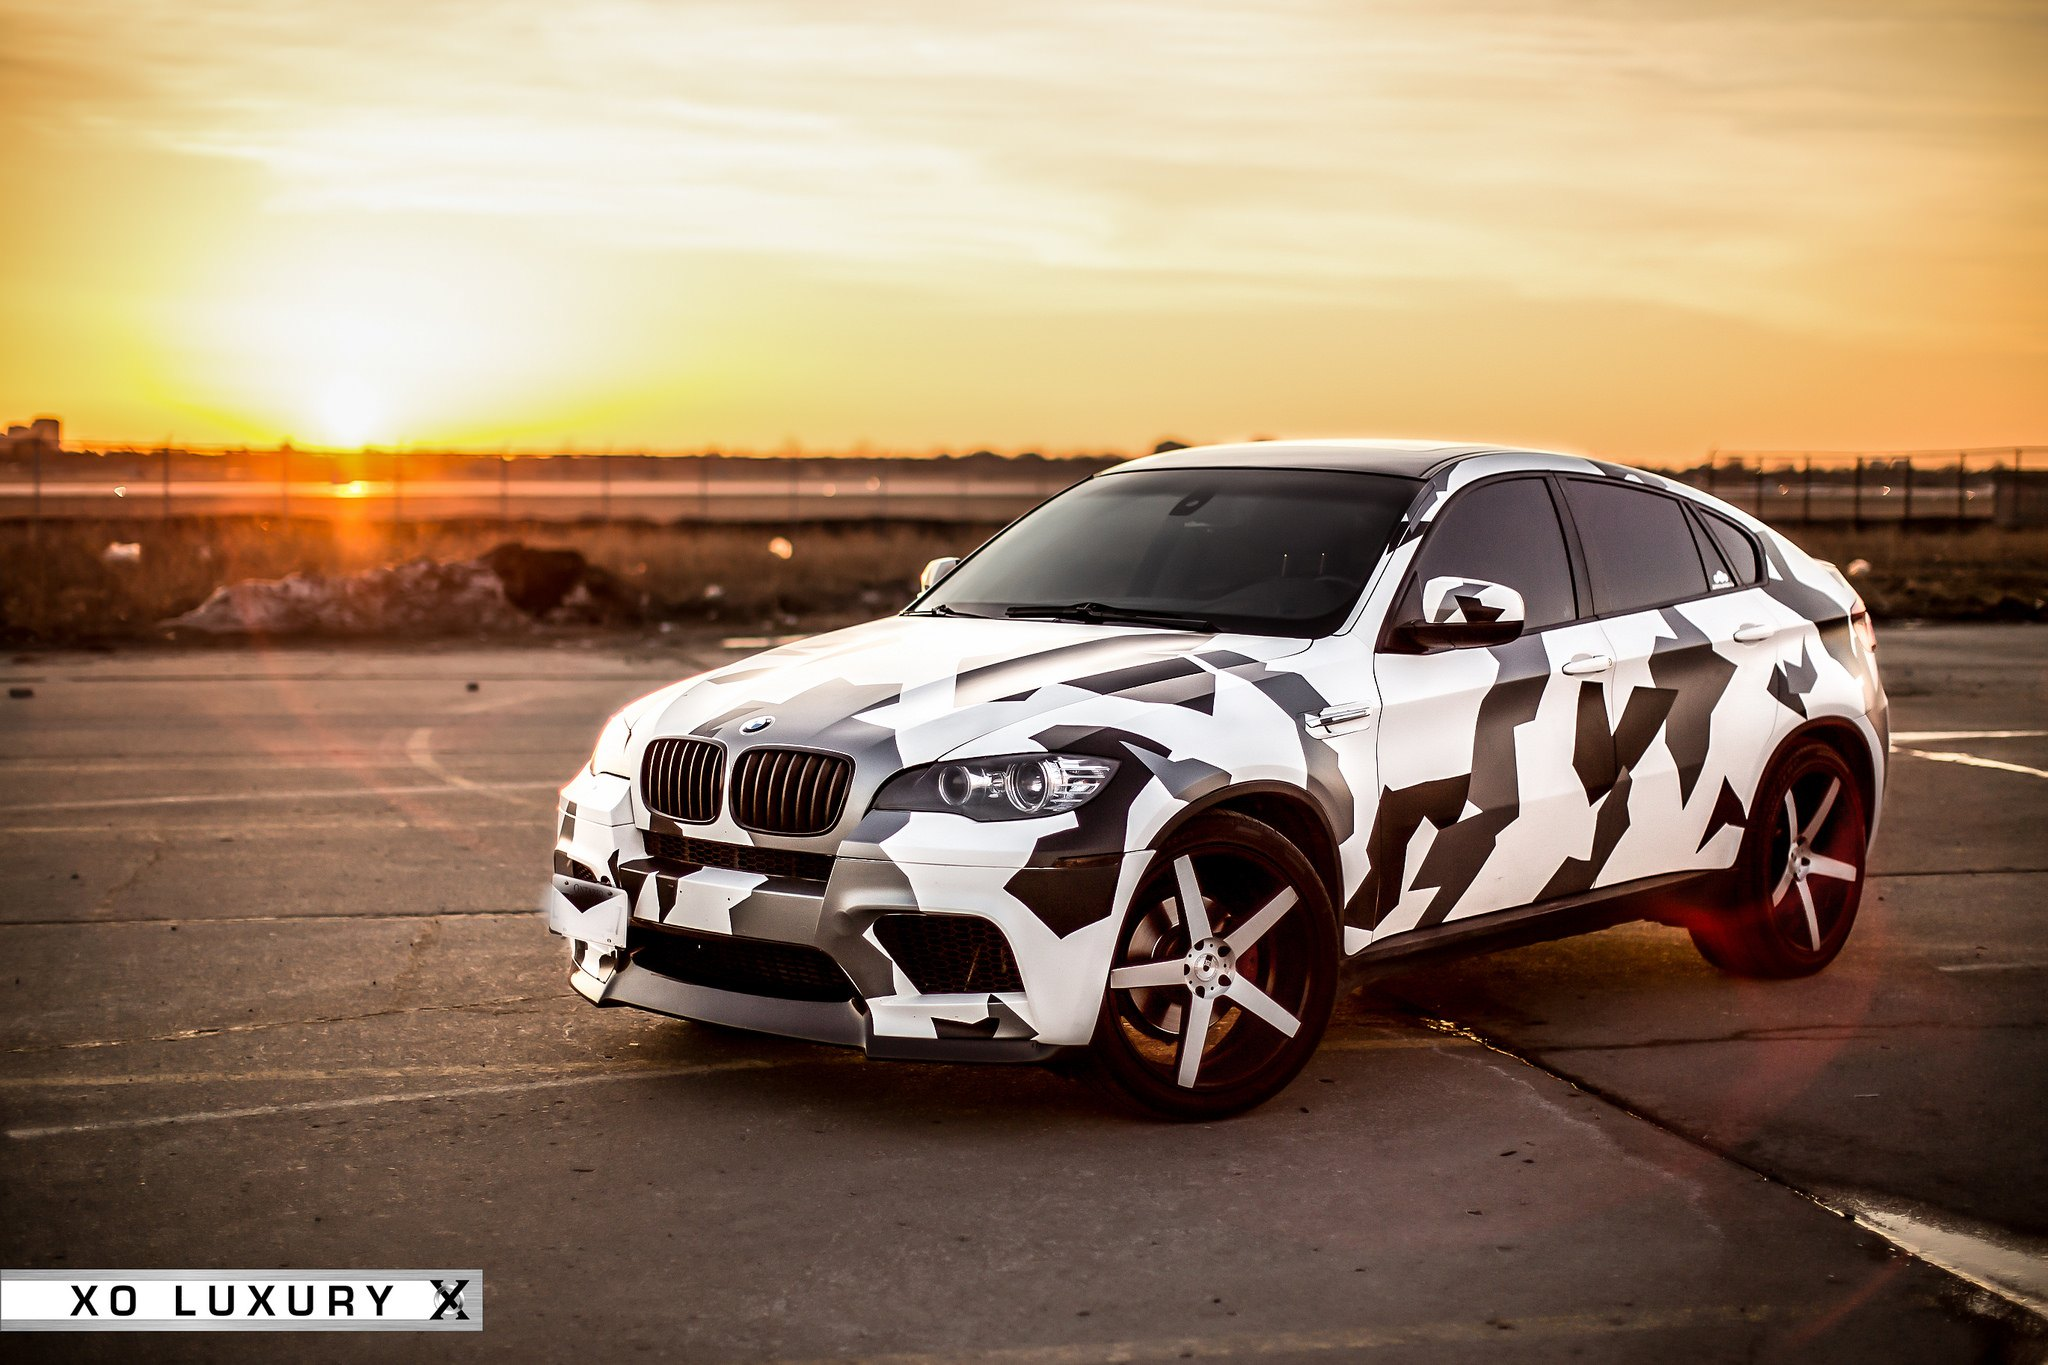 Bmw X6 M With Black And White Camo Wrap On Xo Luxury Rims Carid Com Gallery